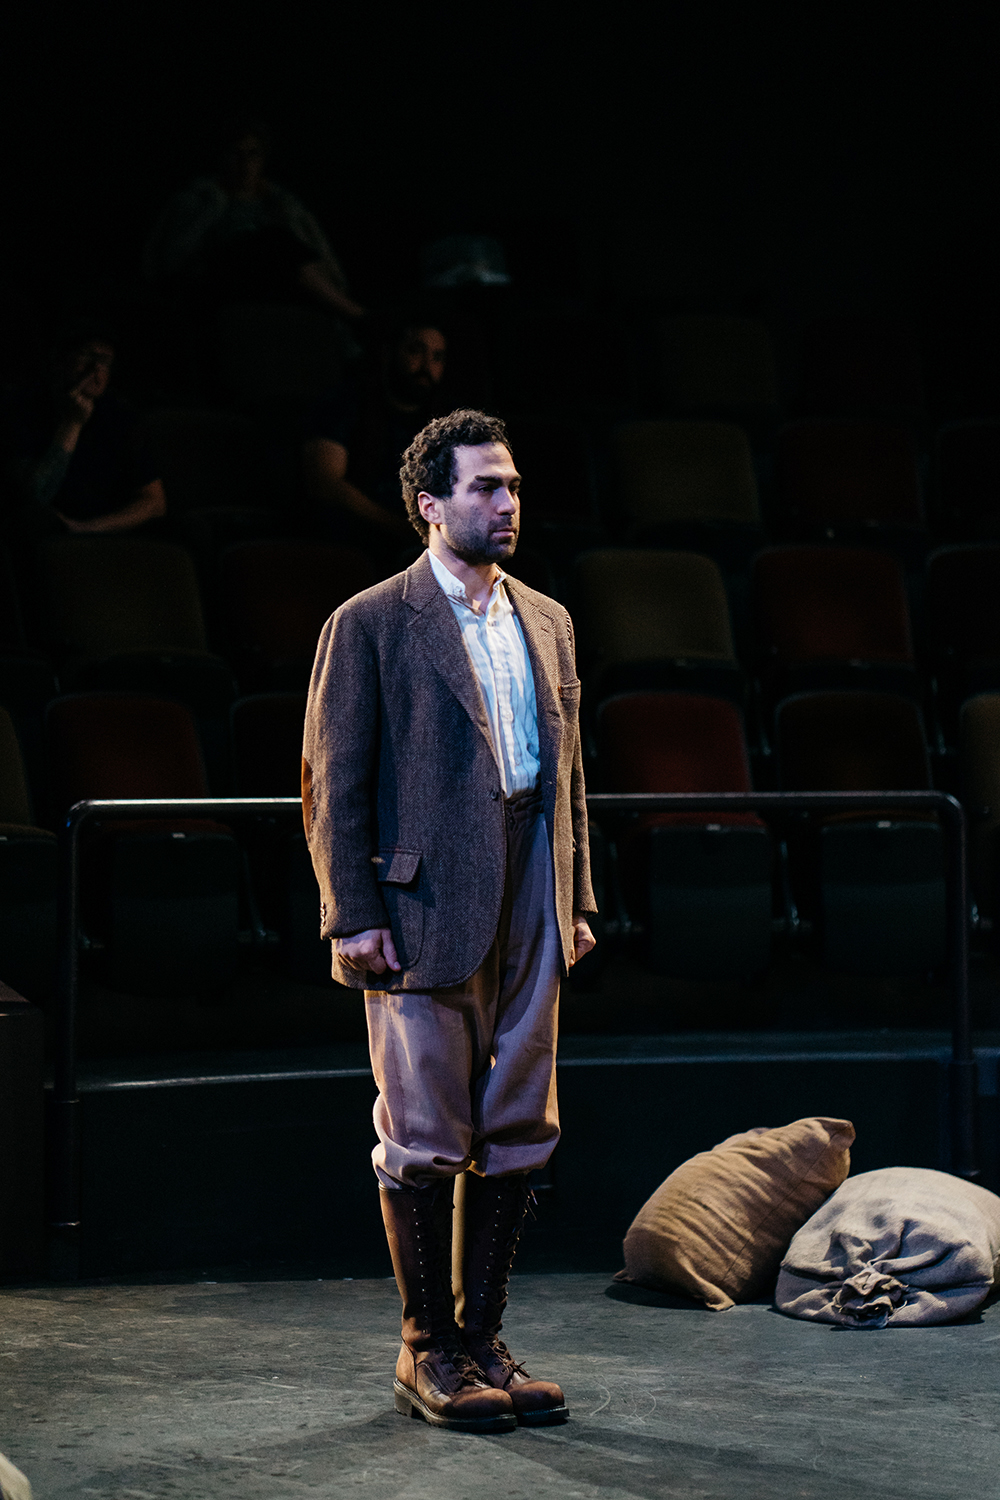 Phillip as Leduc in INCIDENT AT VICHY